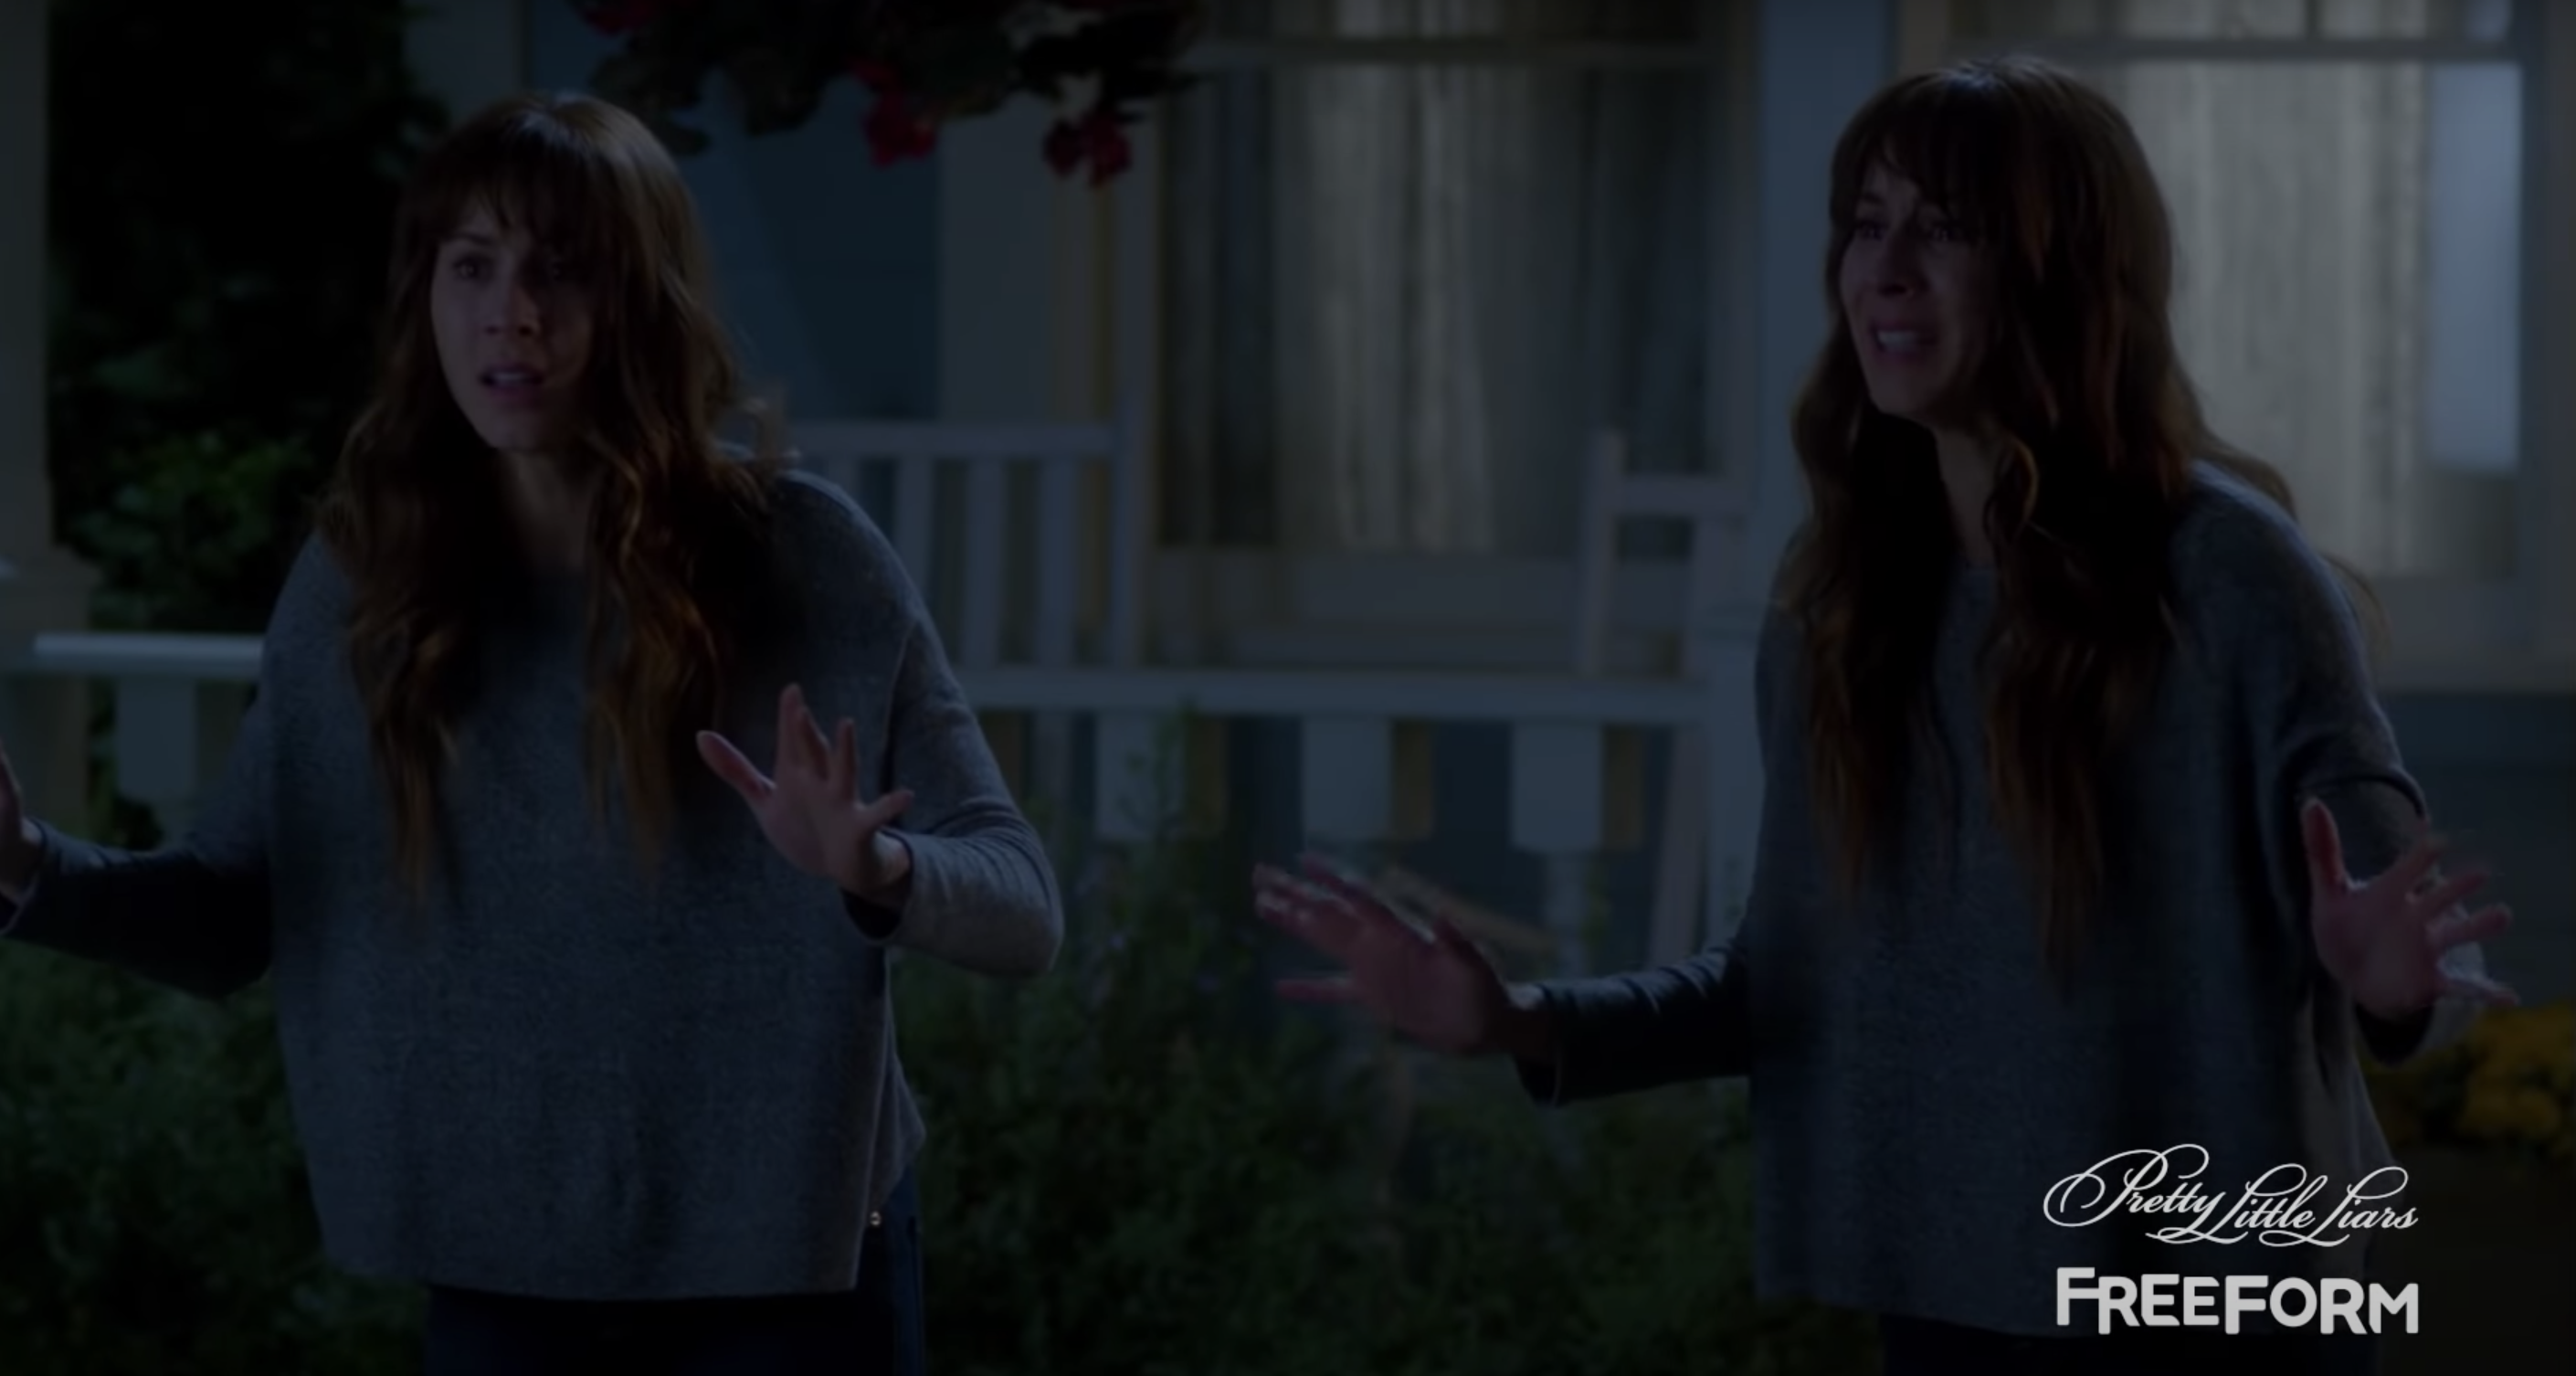 Spencer and her identical twin Alex standing next to each other in fear